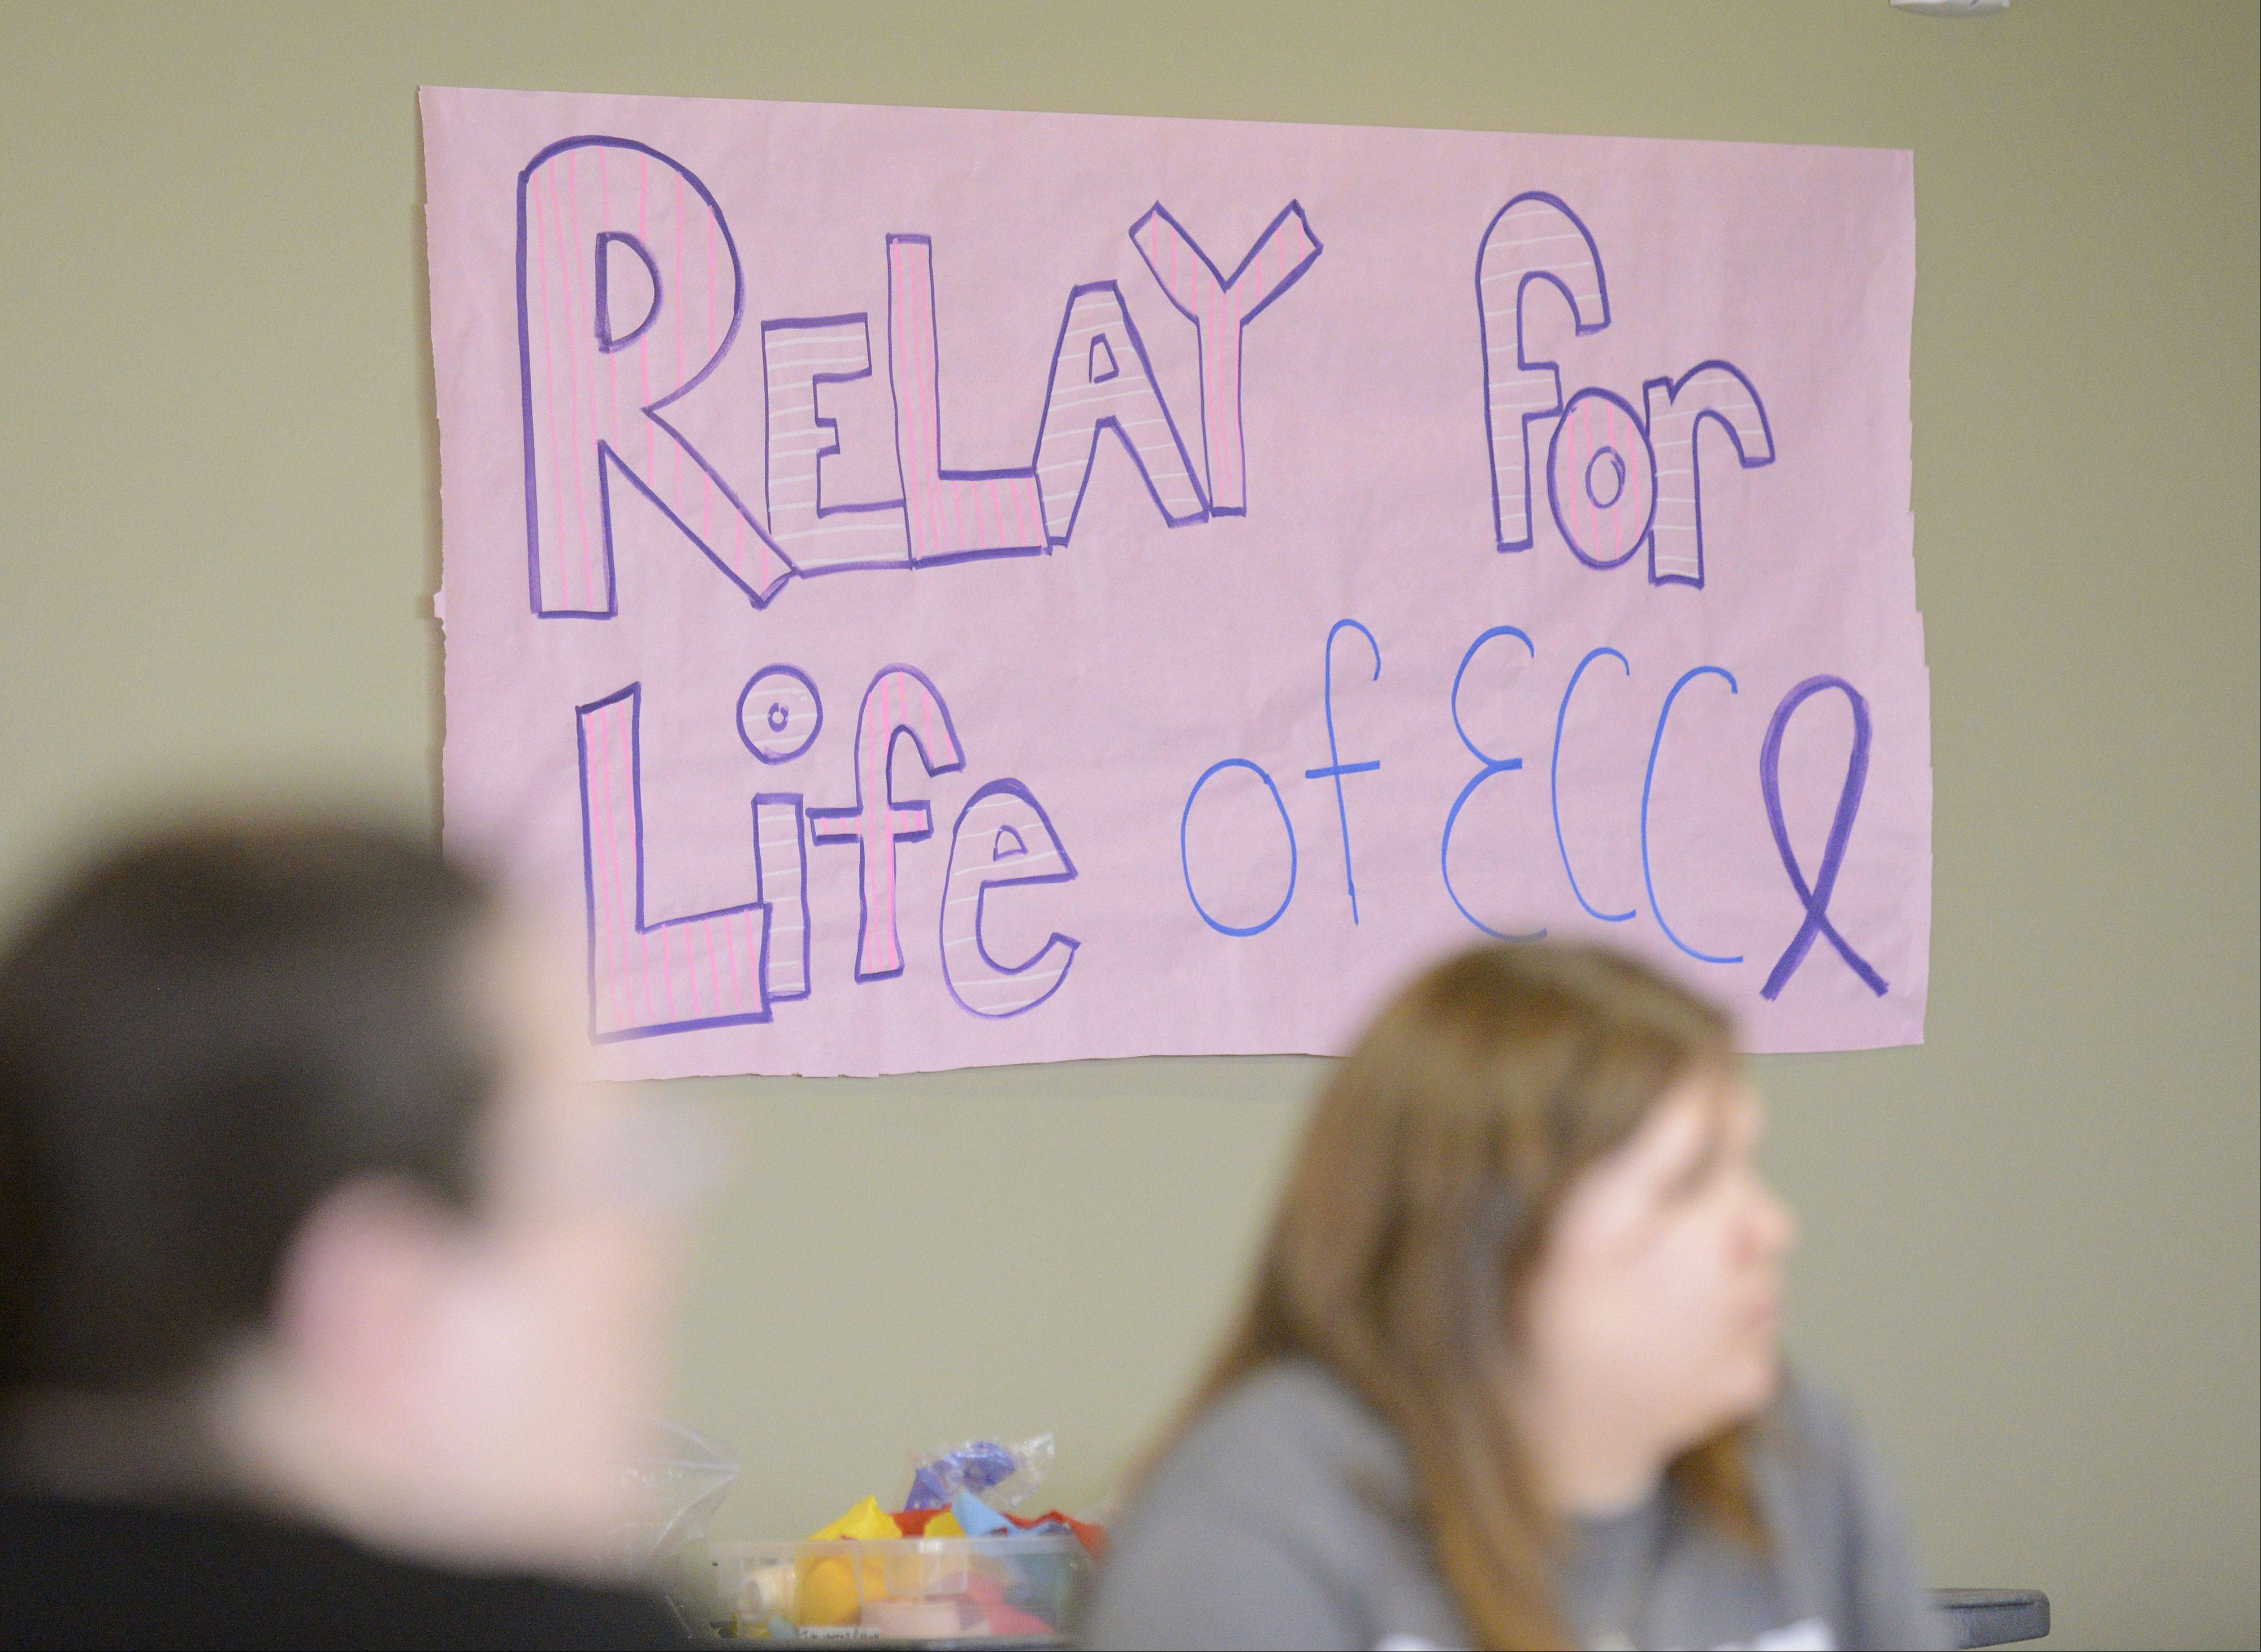 The American Cancer Society Relay For Life of Elgin Community College held a kick off gathering on Saturday. Participants gathered to mingle, register, make crafts and learn more about the June event.